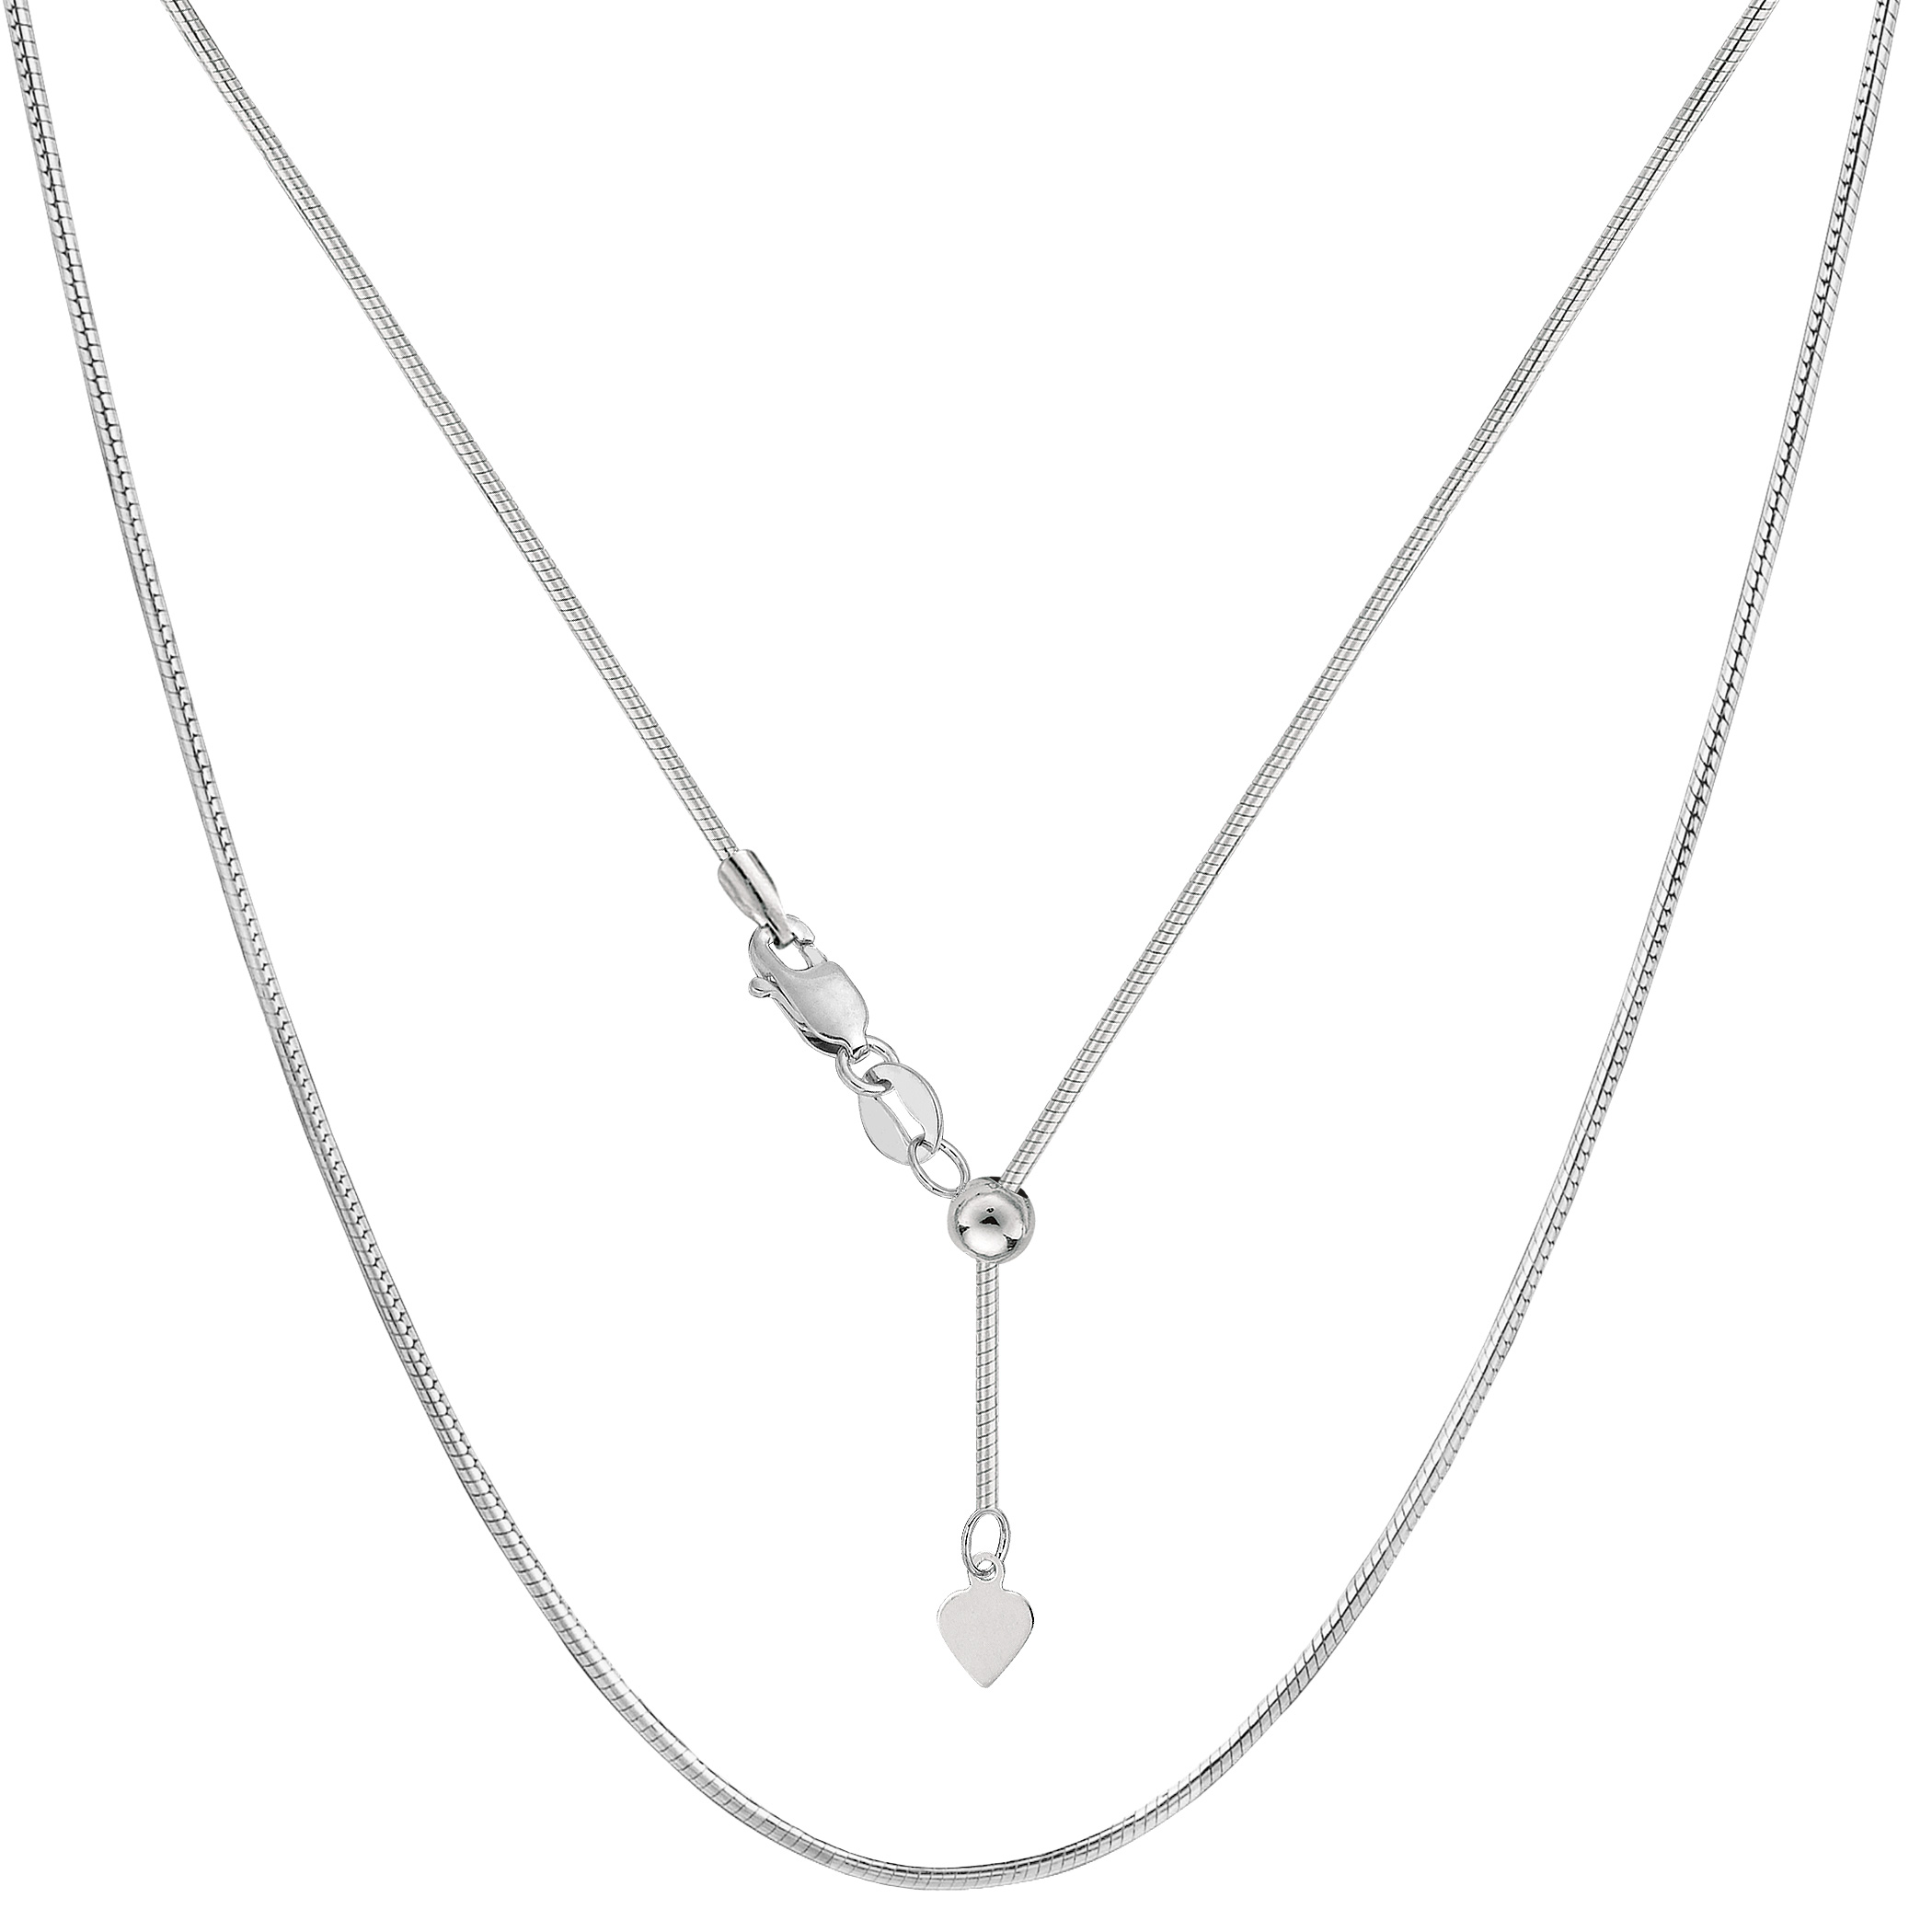 Sterling Silver Rhodium Plated Sliding Adjustable Snake Chain Necklace, Width 1.2mm, 22  Using it by itself or combining it with charms and pendants, this 22 inch long adjustable snake style chain is a perfect addition to any jewelry fashionista collection.